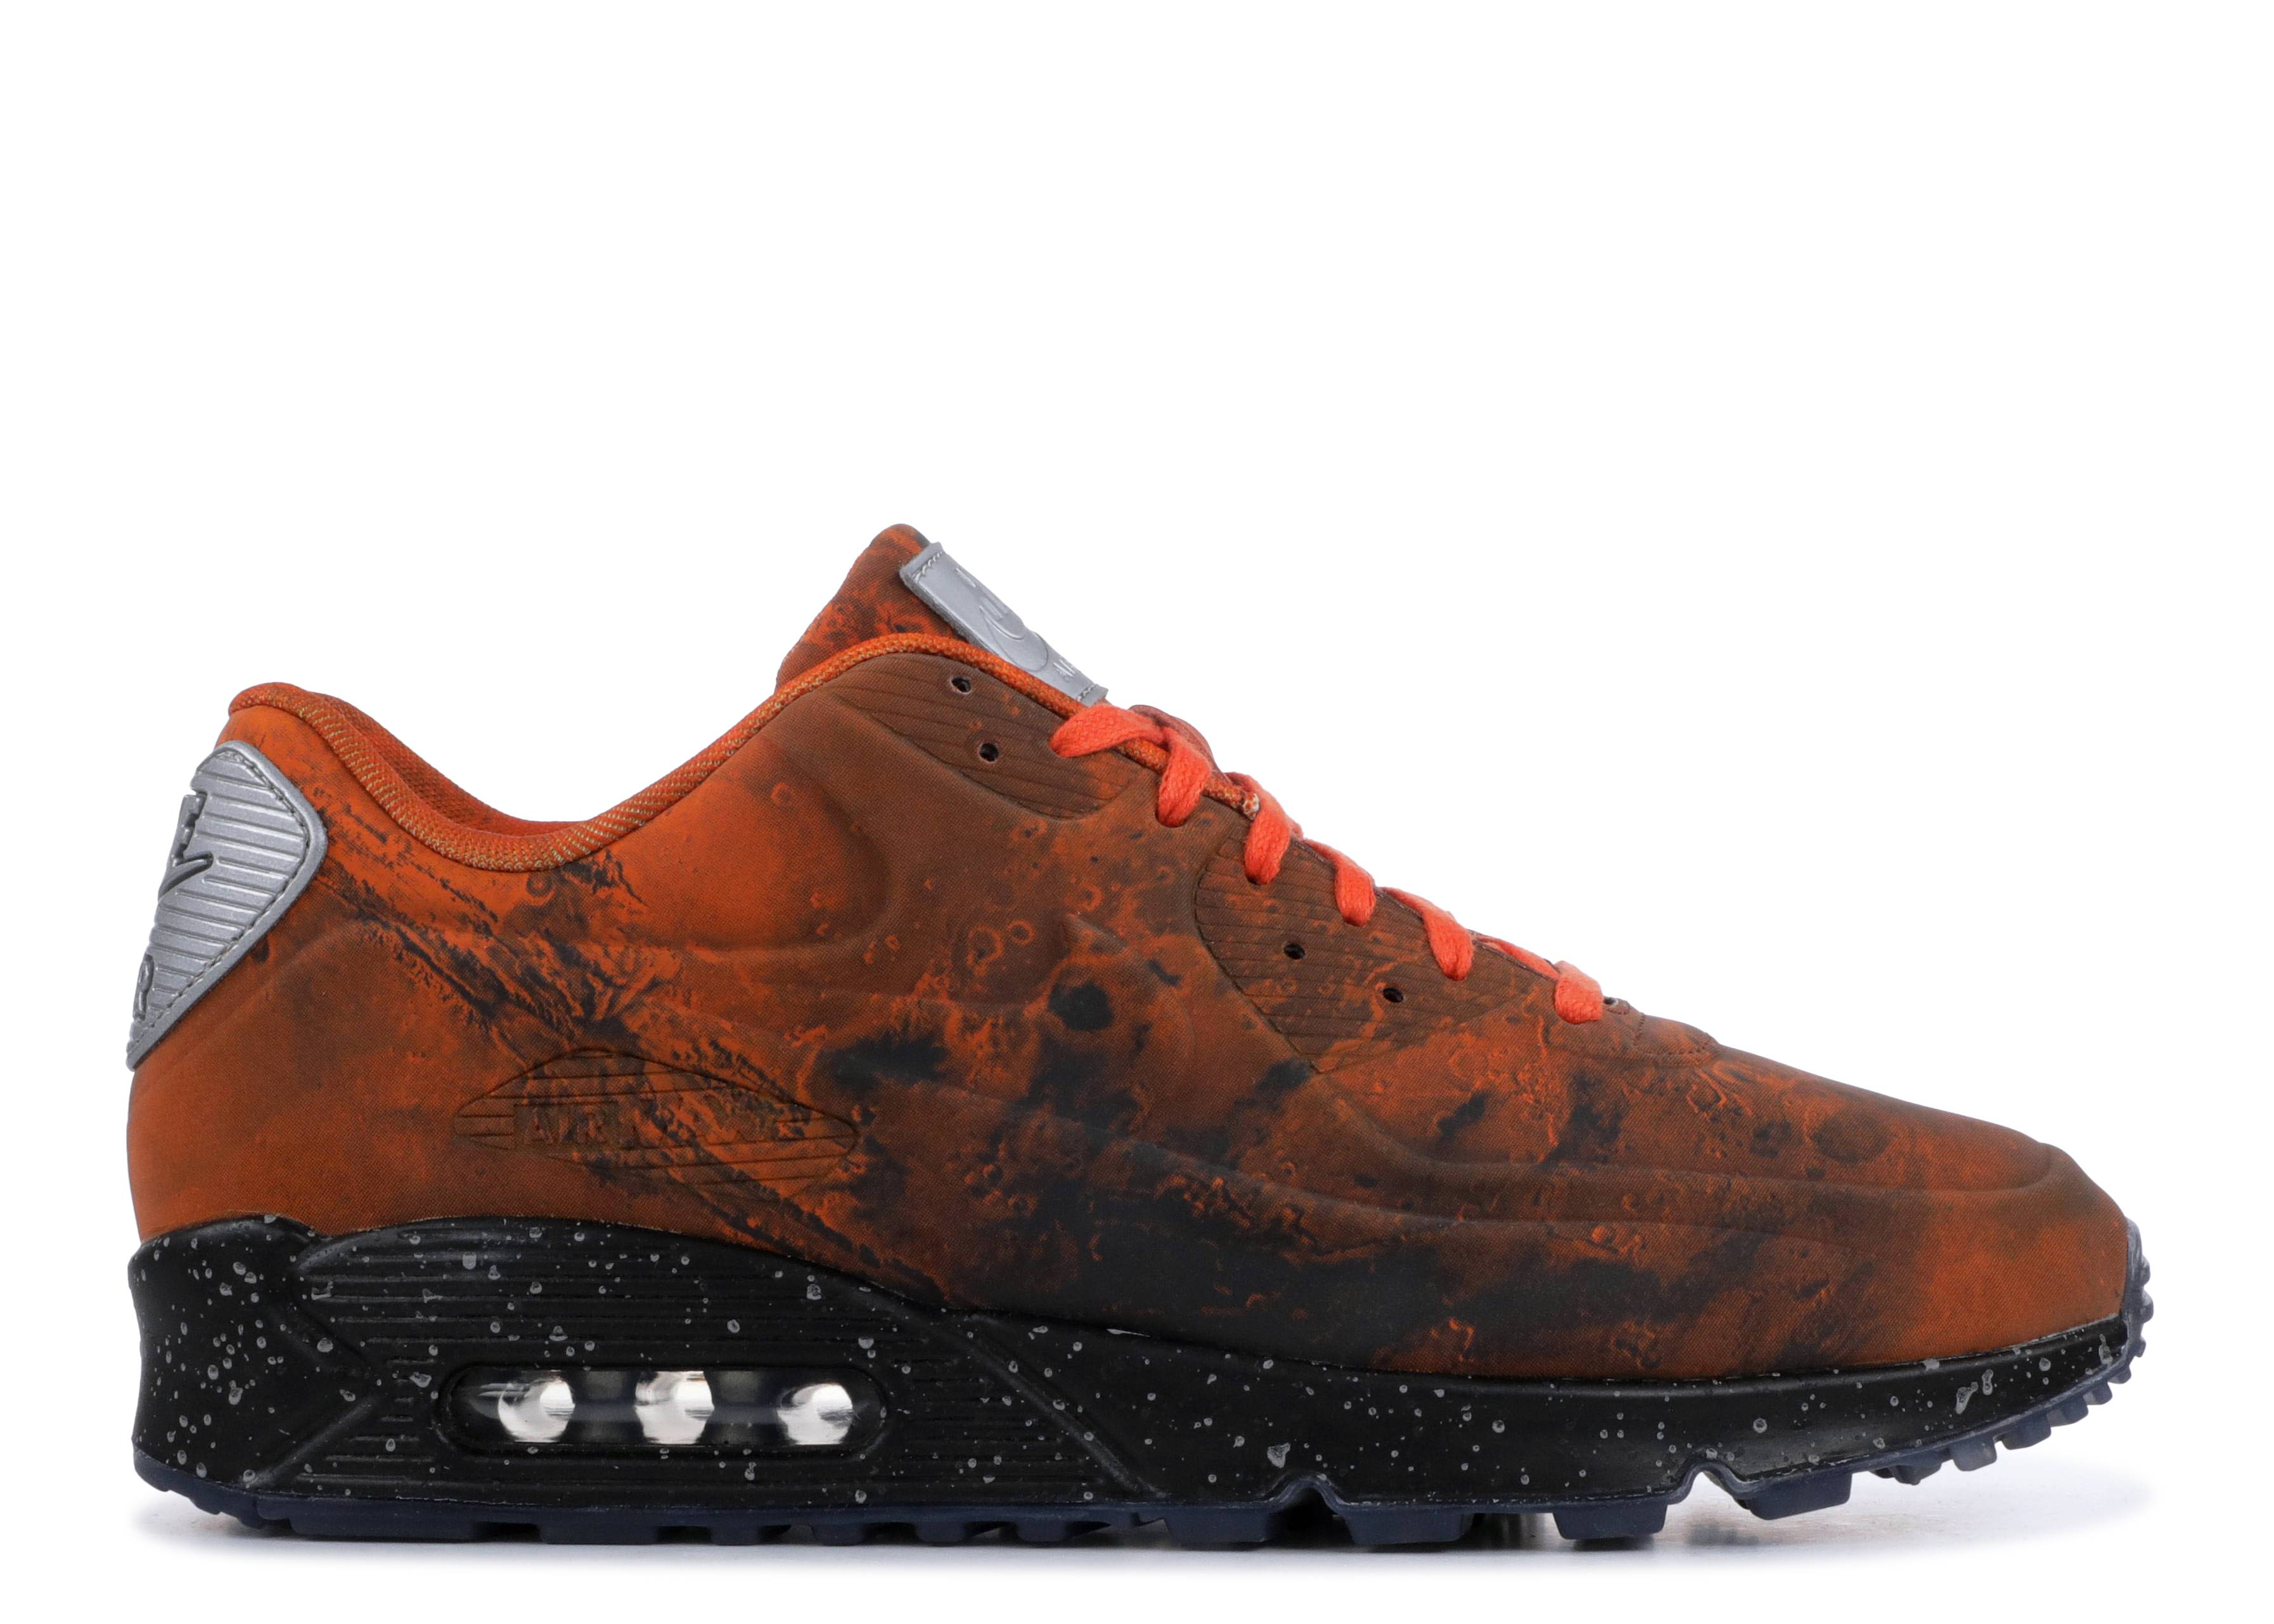 air max 90 mars landing size - photo #11